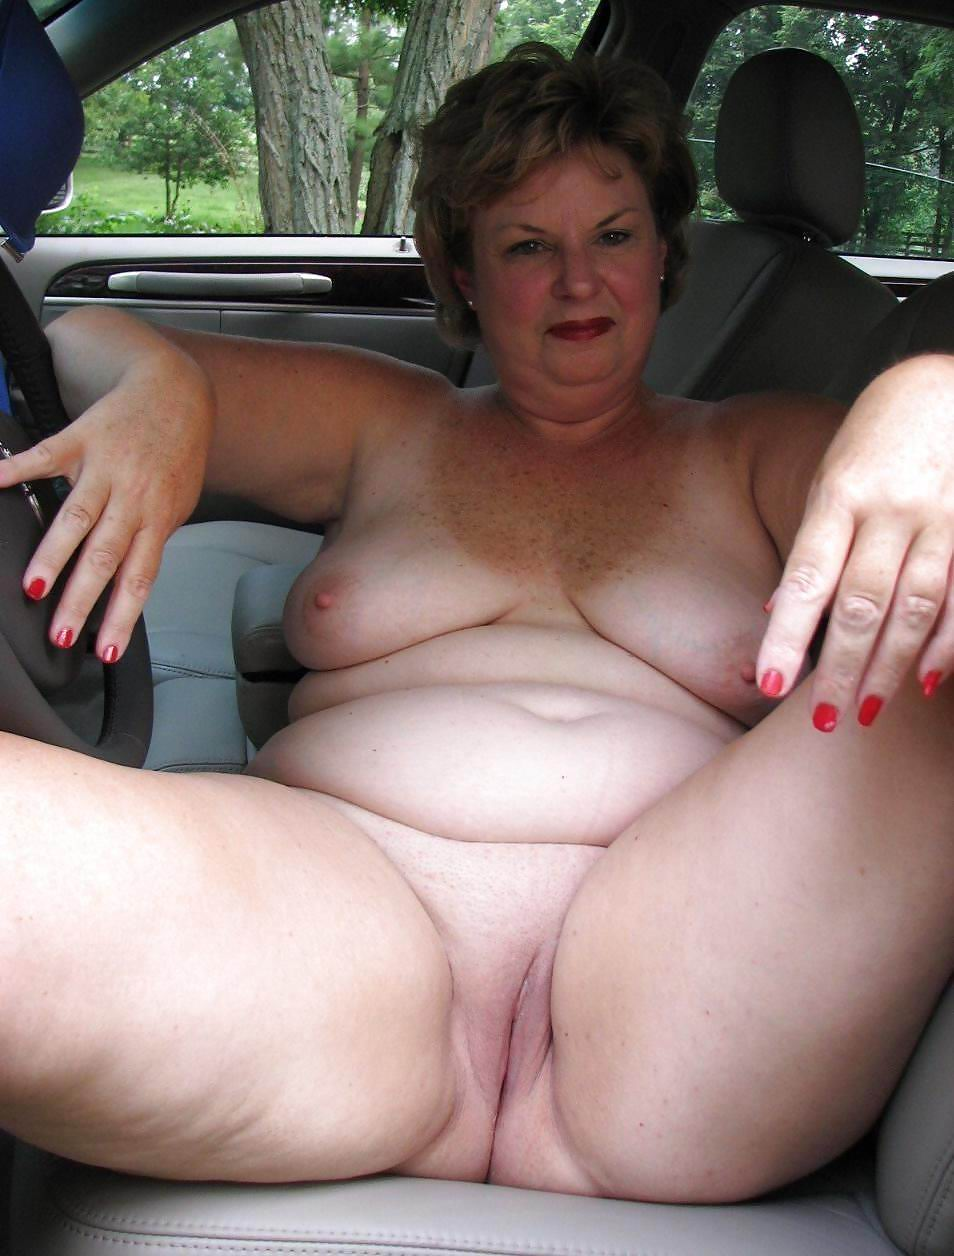 horny grannies:this site dedicated to older and mature women